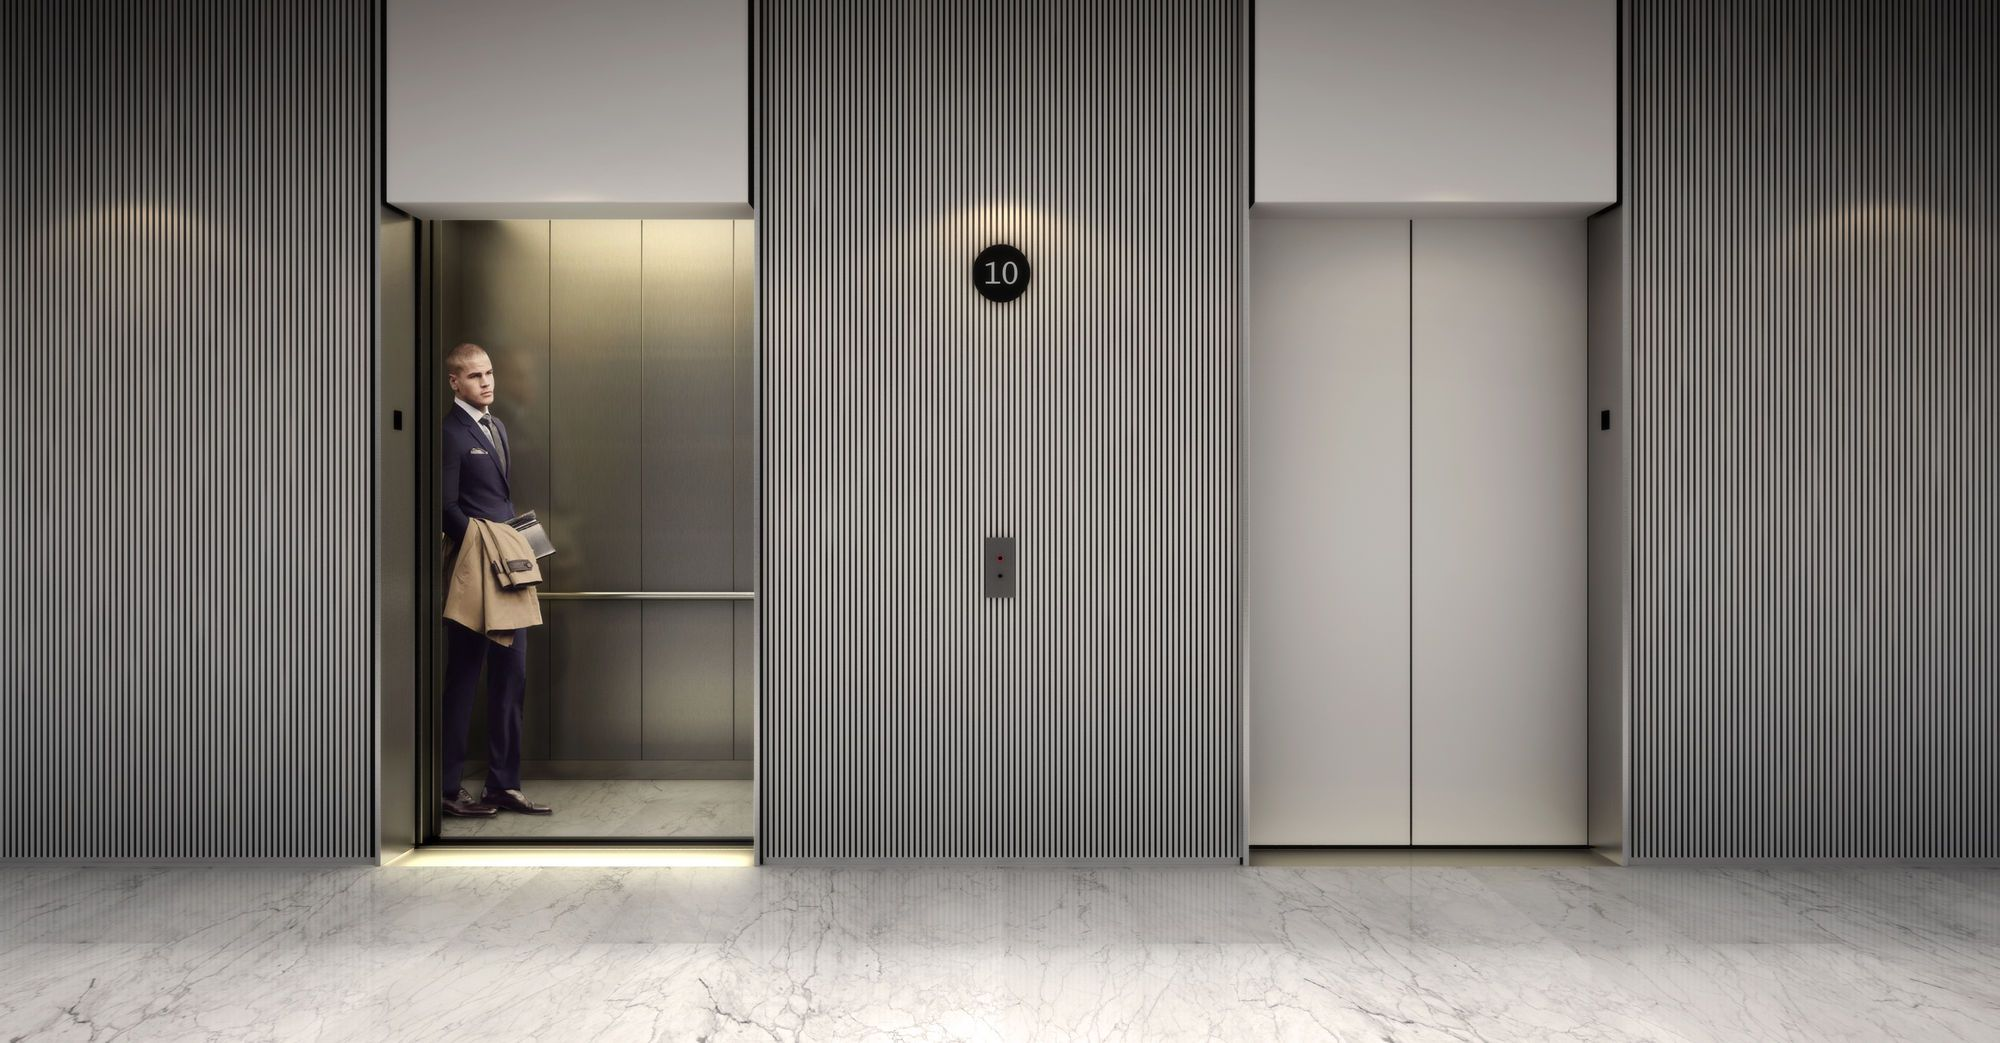 Galer a de visualizaci n en arquitectura 10eightytwo 5 for Elevator designs